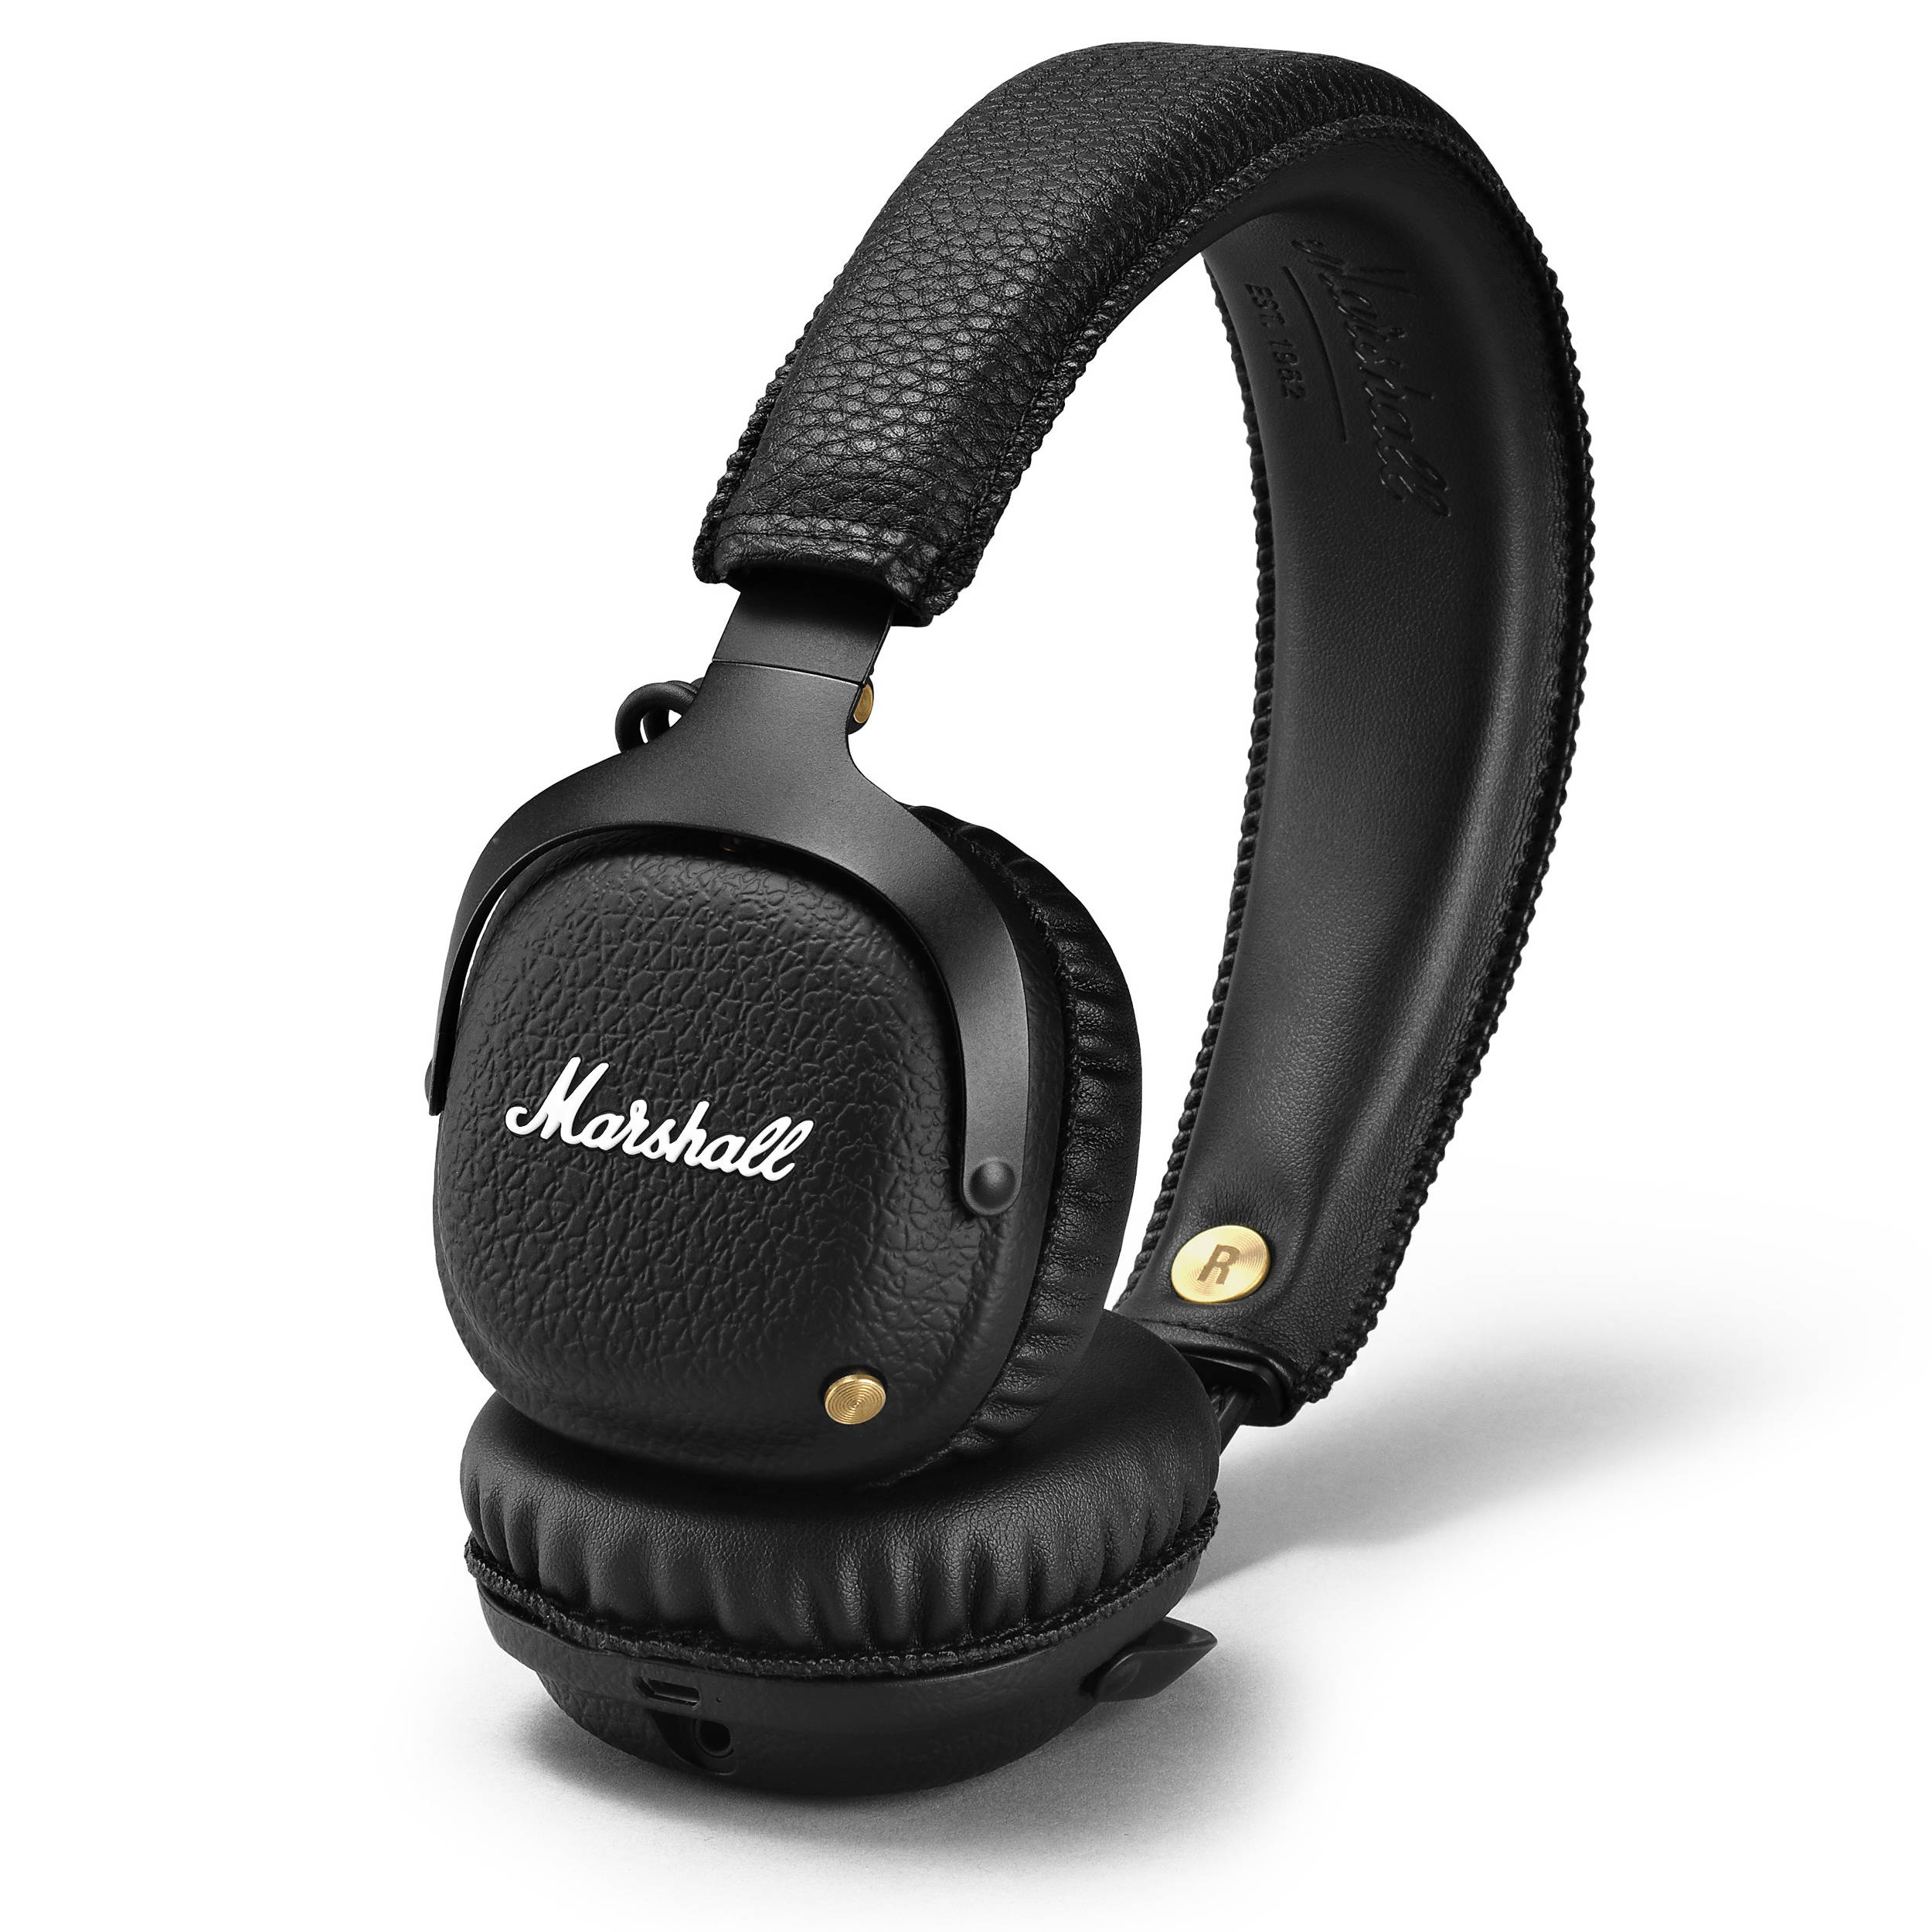 marshall audio 4091742 mid bluetooth headphone apxt 1282423 Review: Pom Pro Music Company Excels With New Bluetooth Headphones